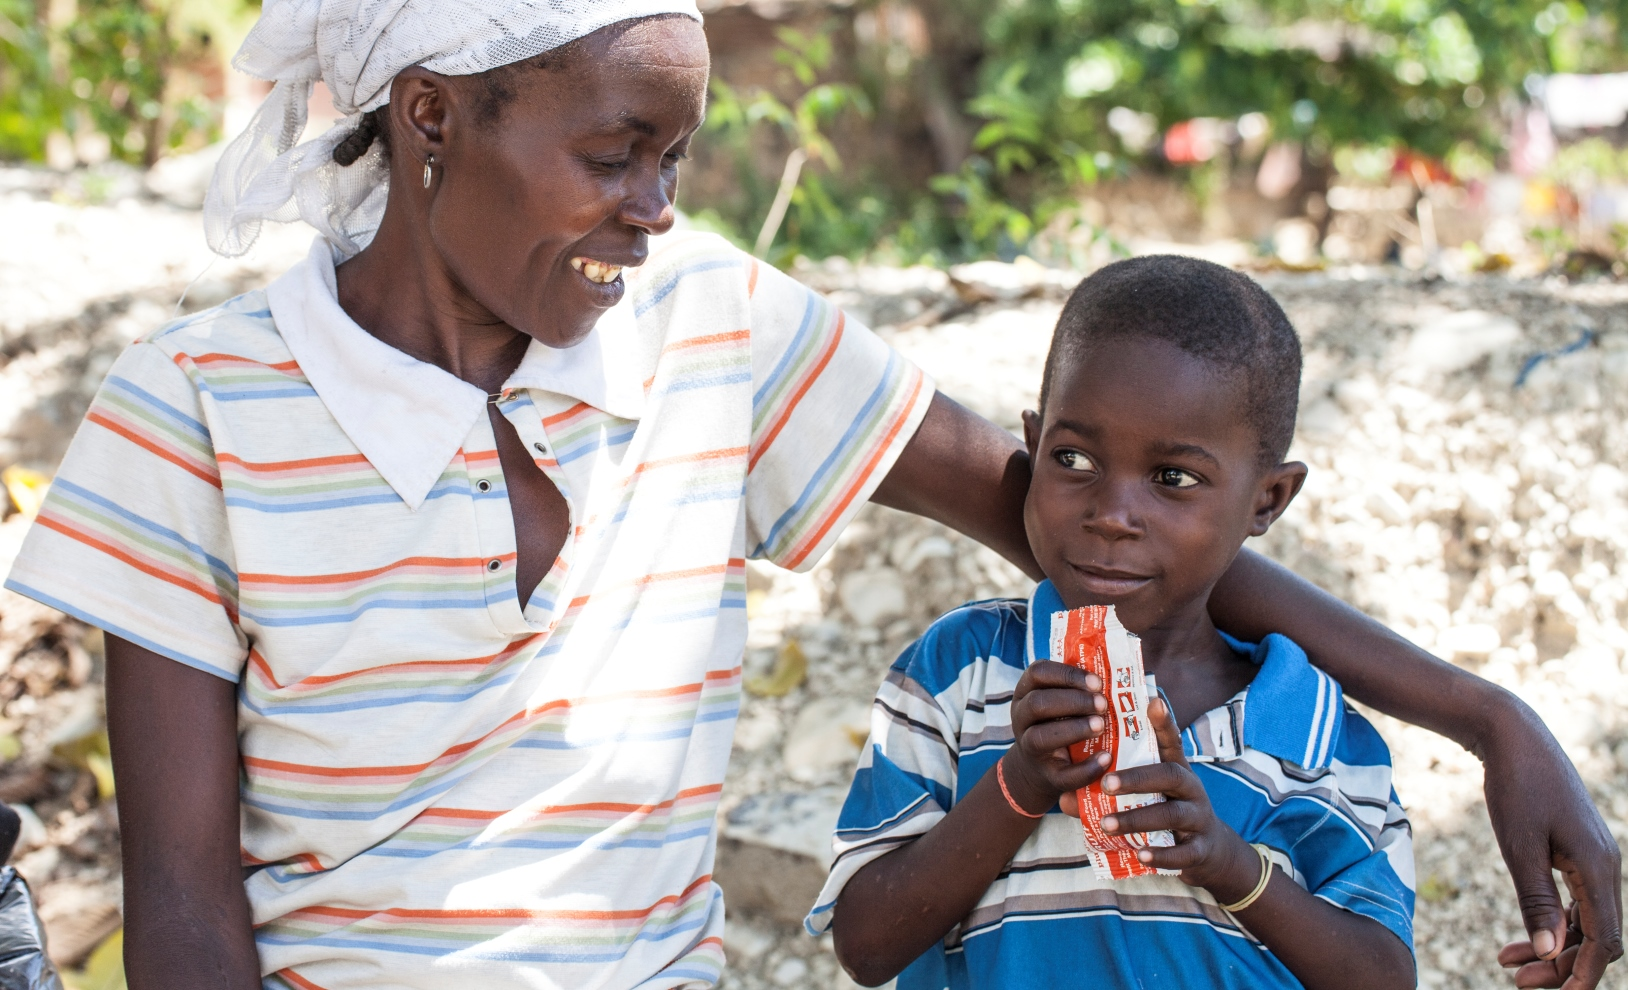 Childhood malnutrition is one of the target problems the 3 Million Club was founded to address. Photo: courtesy